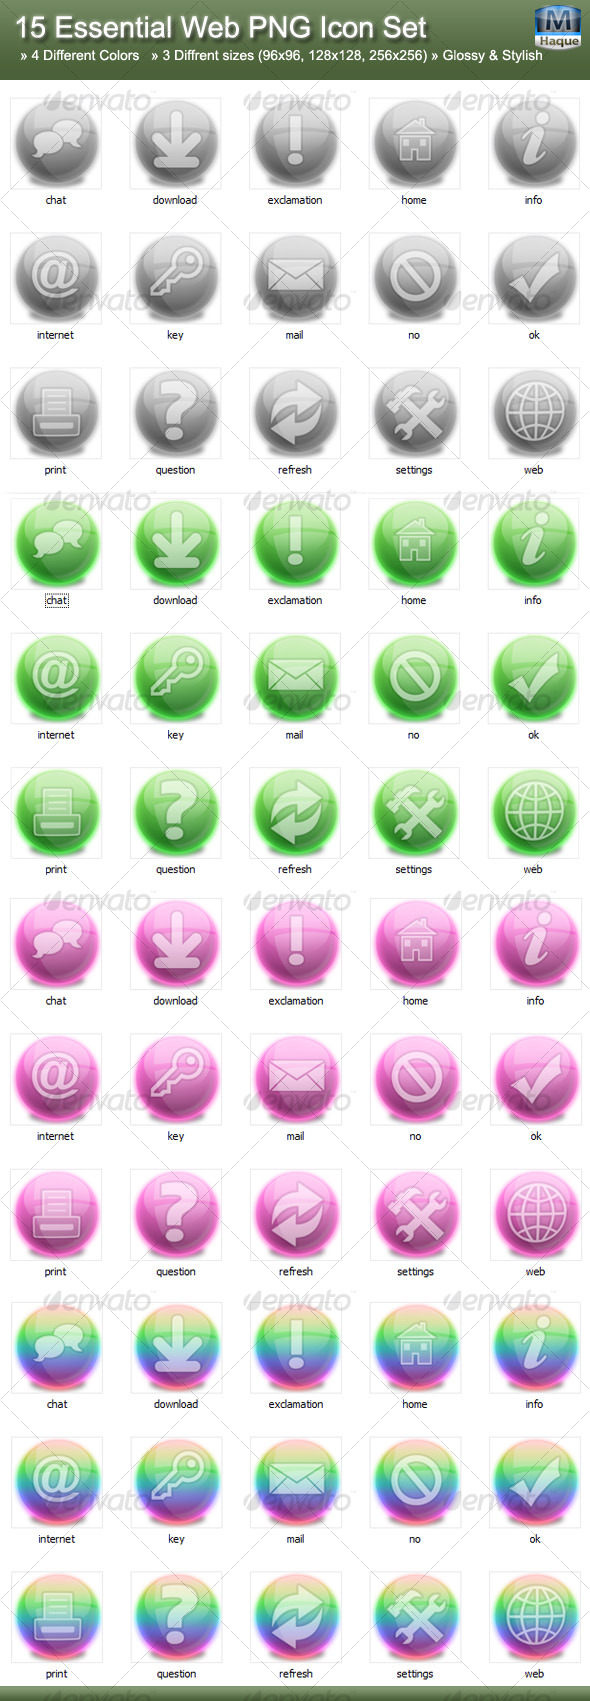 15 Essential Web PNG Icon Set